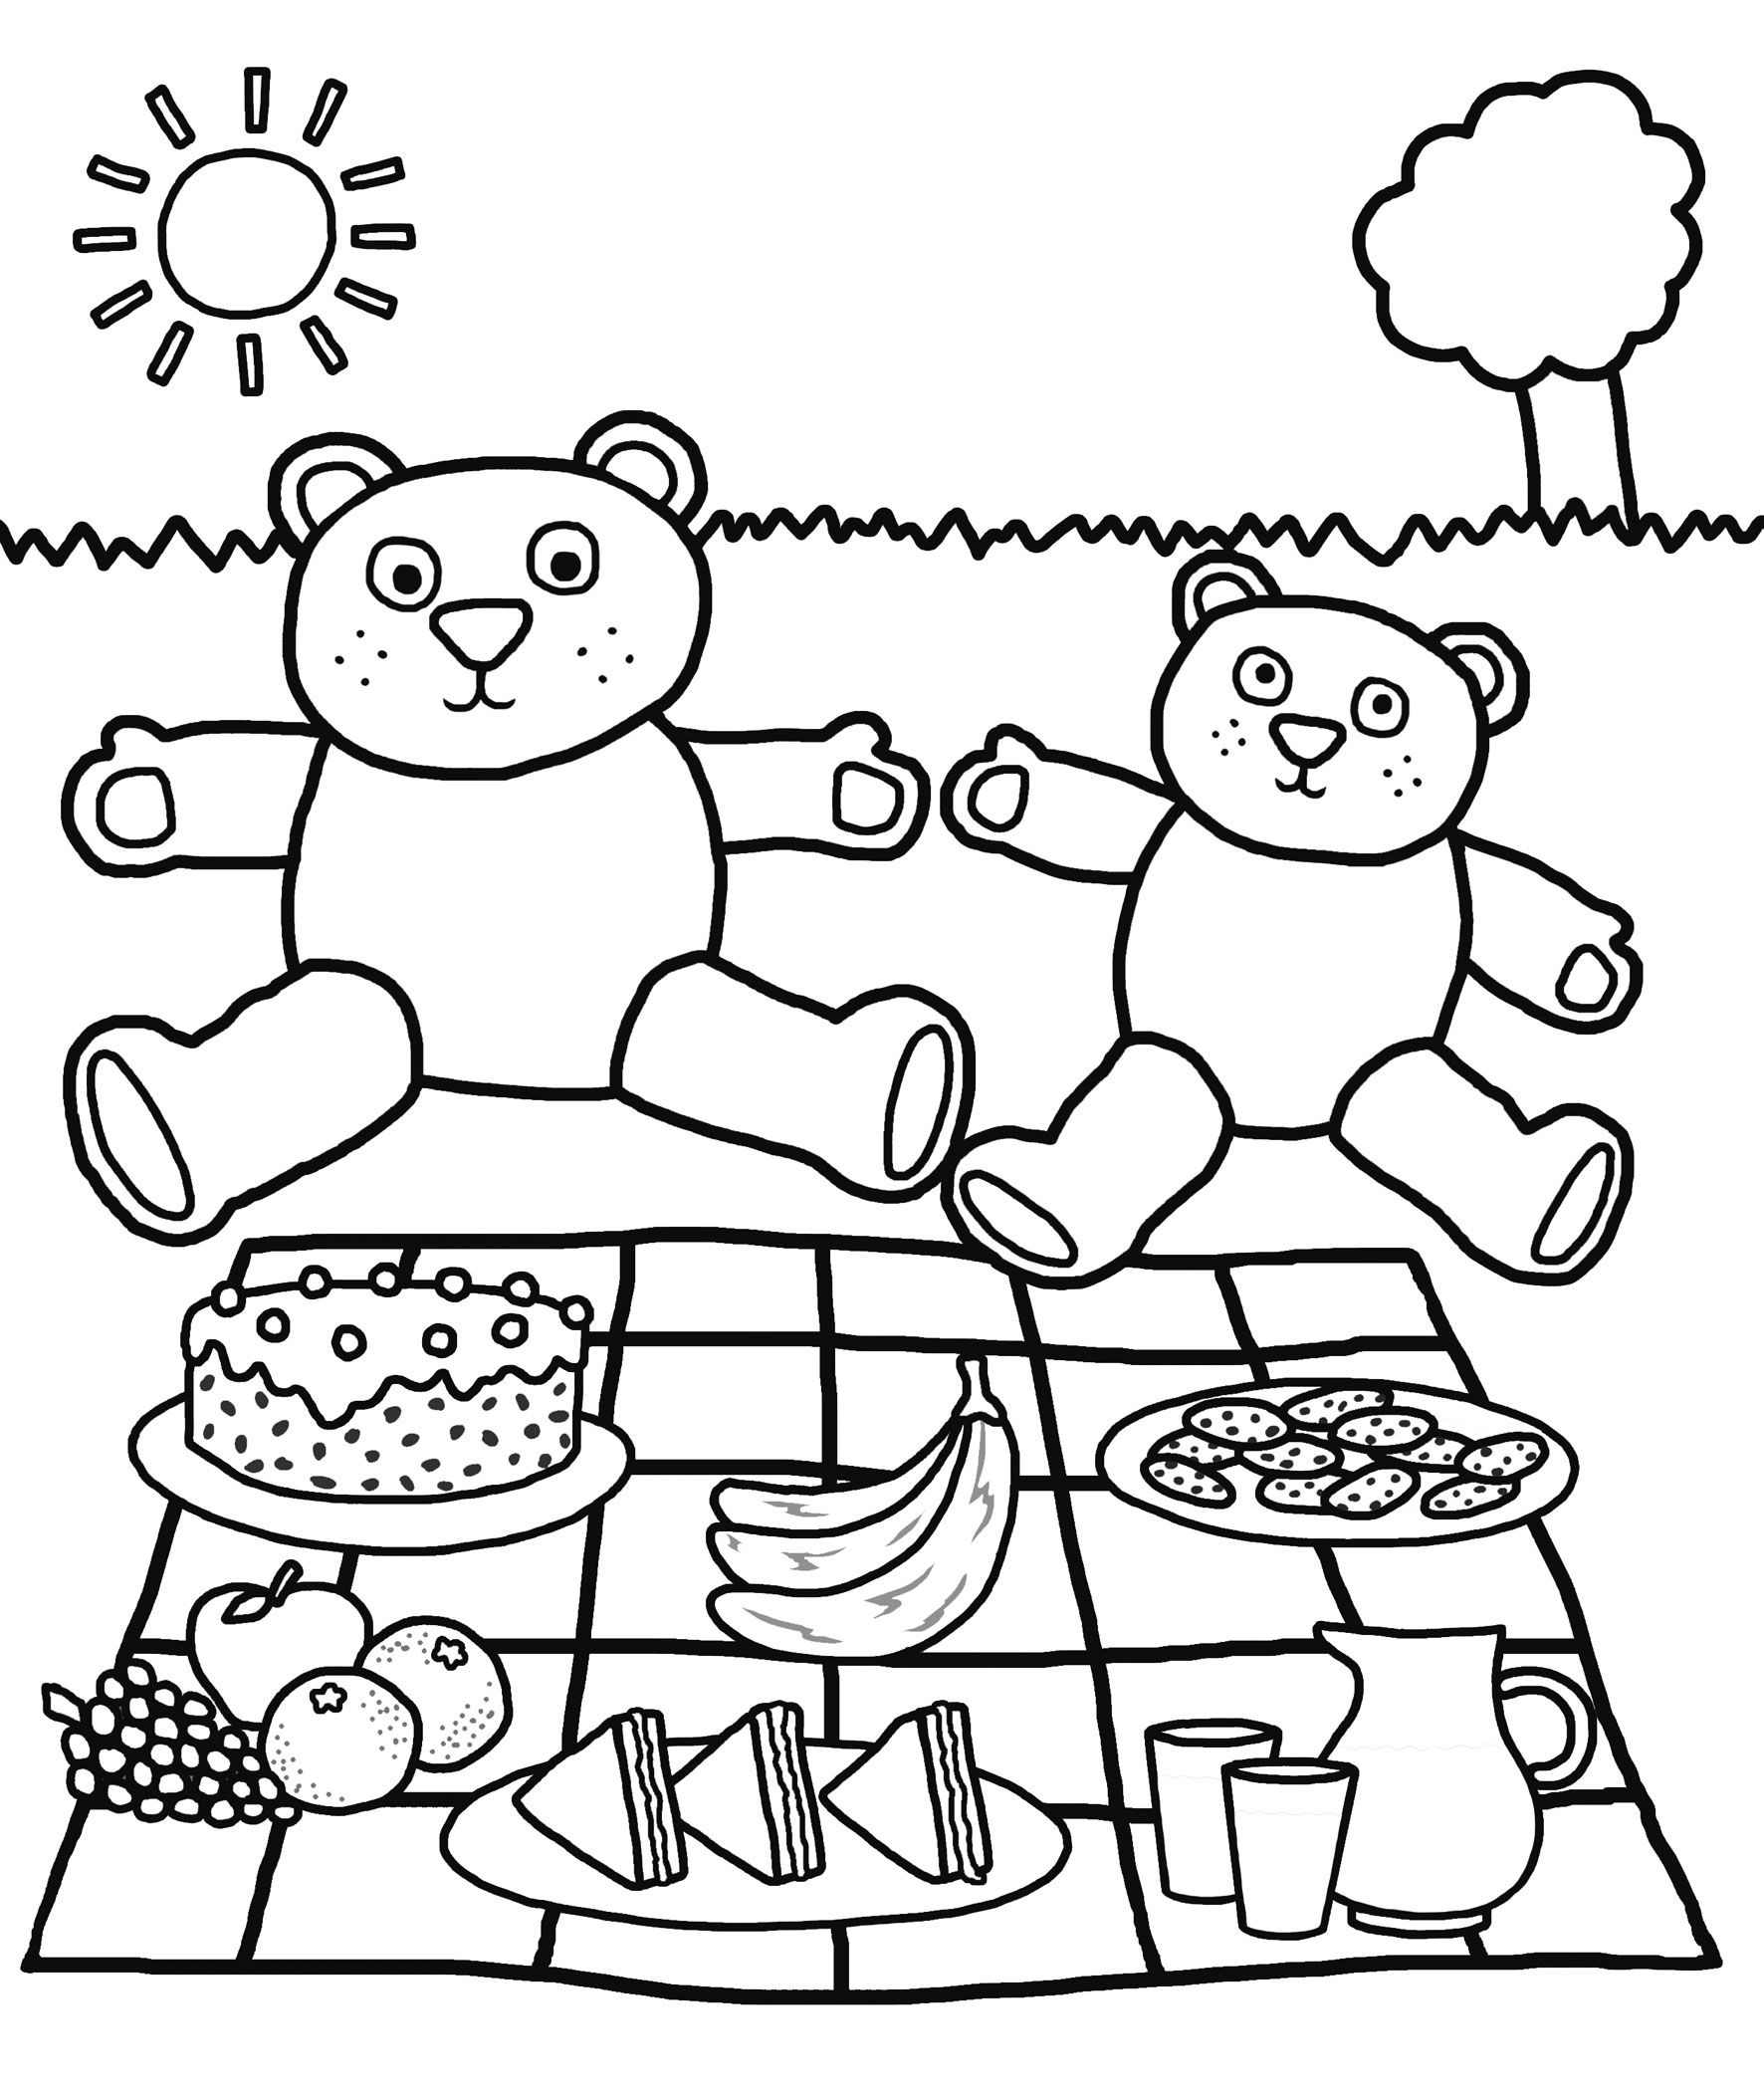 teddy bear picnic coloring pages printable teddy bear coloring pages for kids cool2bkids coloring pages bear teddy picnic